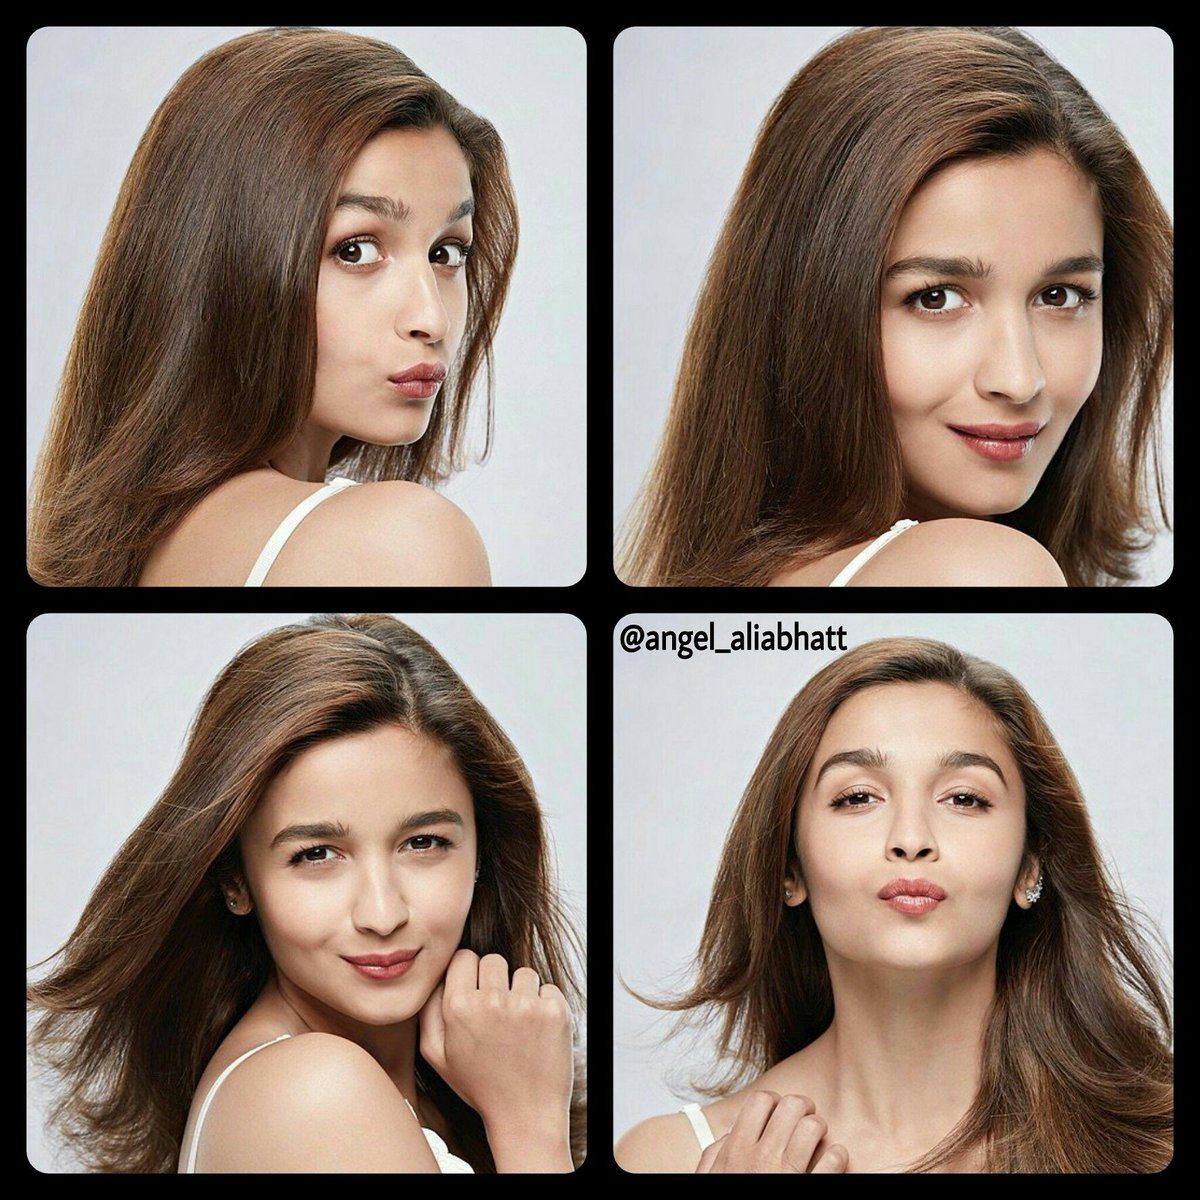 The Real Beauty  @aliaa08  #AliaBhatt #angel_aliabhatt #real #beautiful #cute #CutiePie #Bollywood #FolloMe<br>http://pic.twitter.com/GUrMEMNpiW